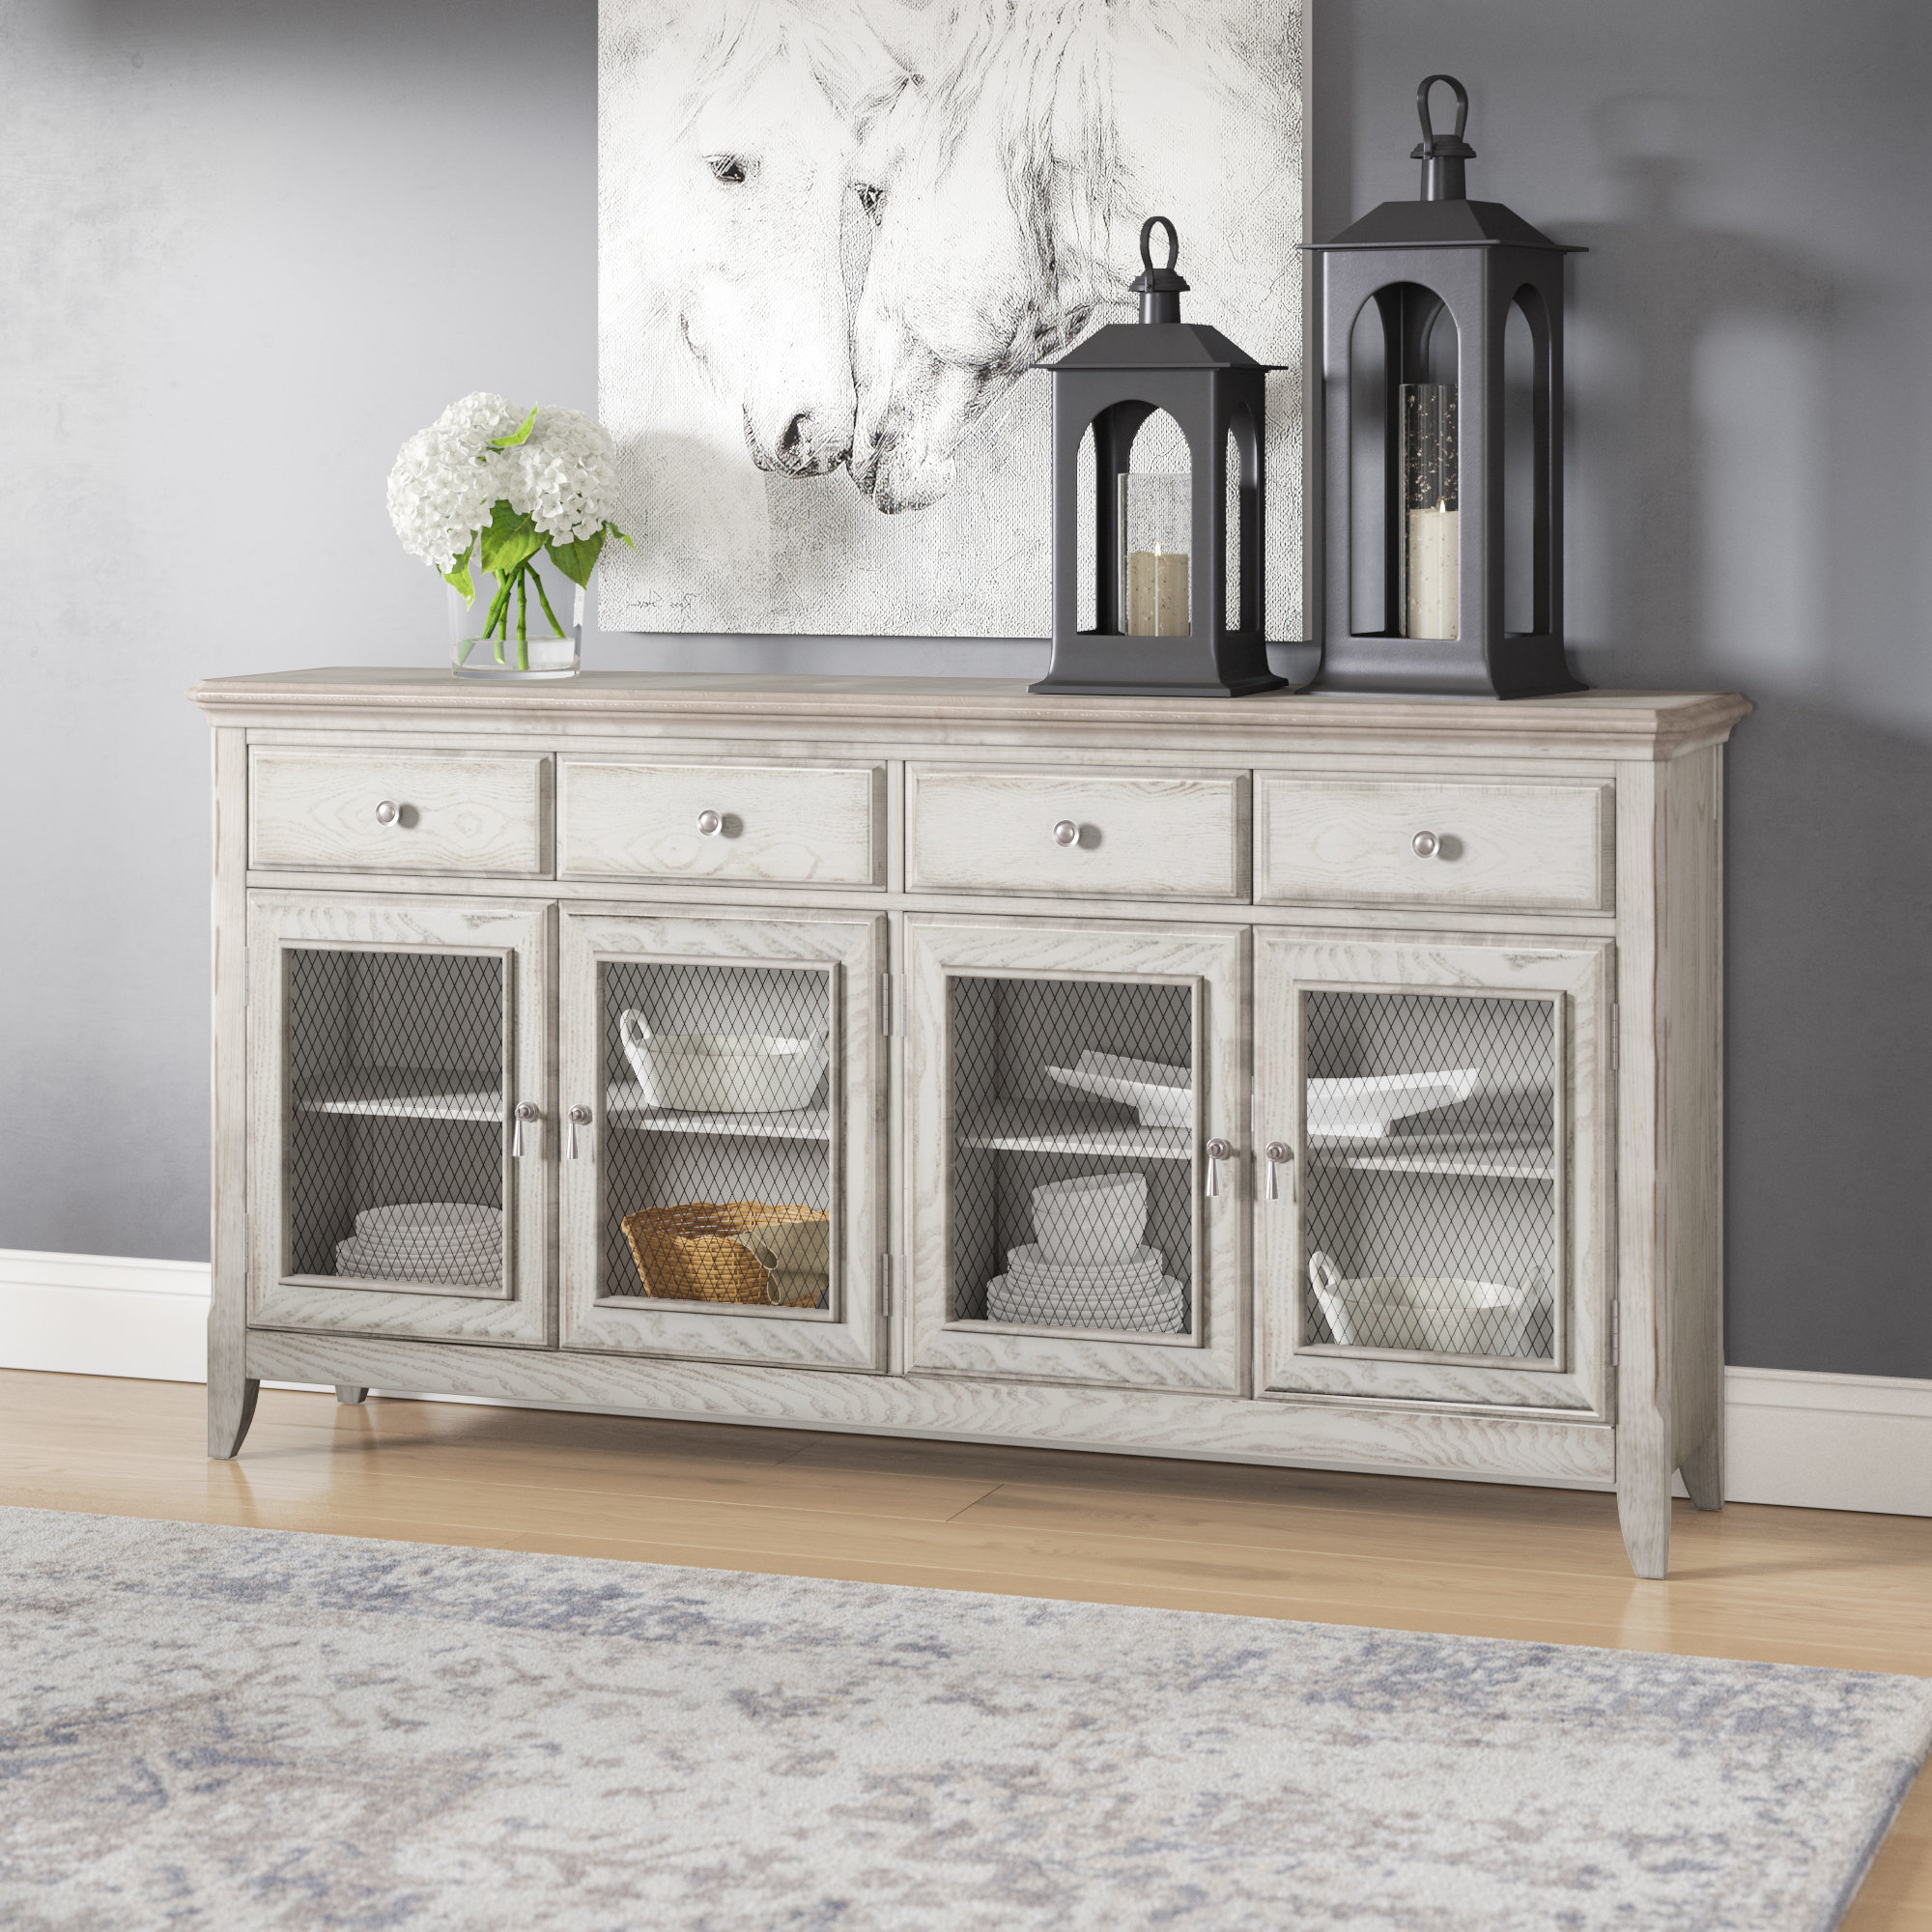 2 Door Credenza | Wayfair Intended For Candace Door Credenzas (View 2 of 20)